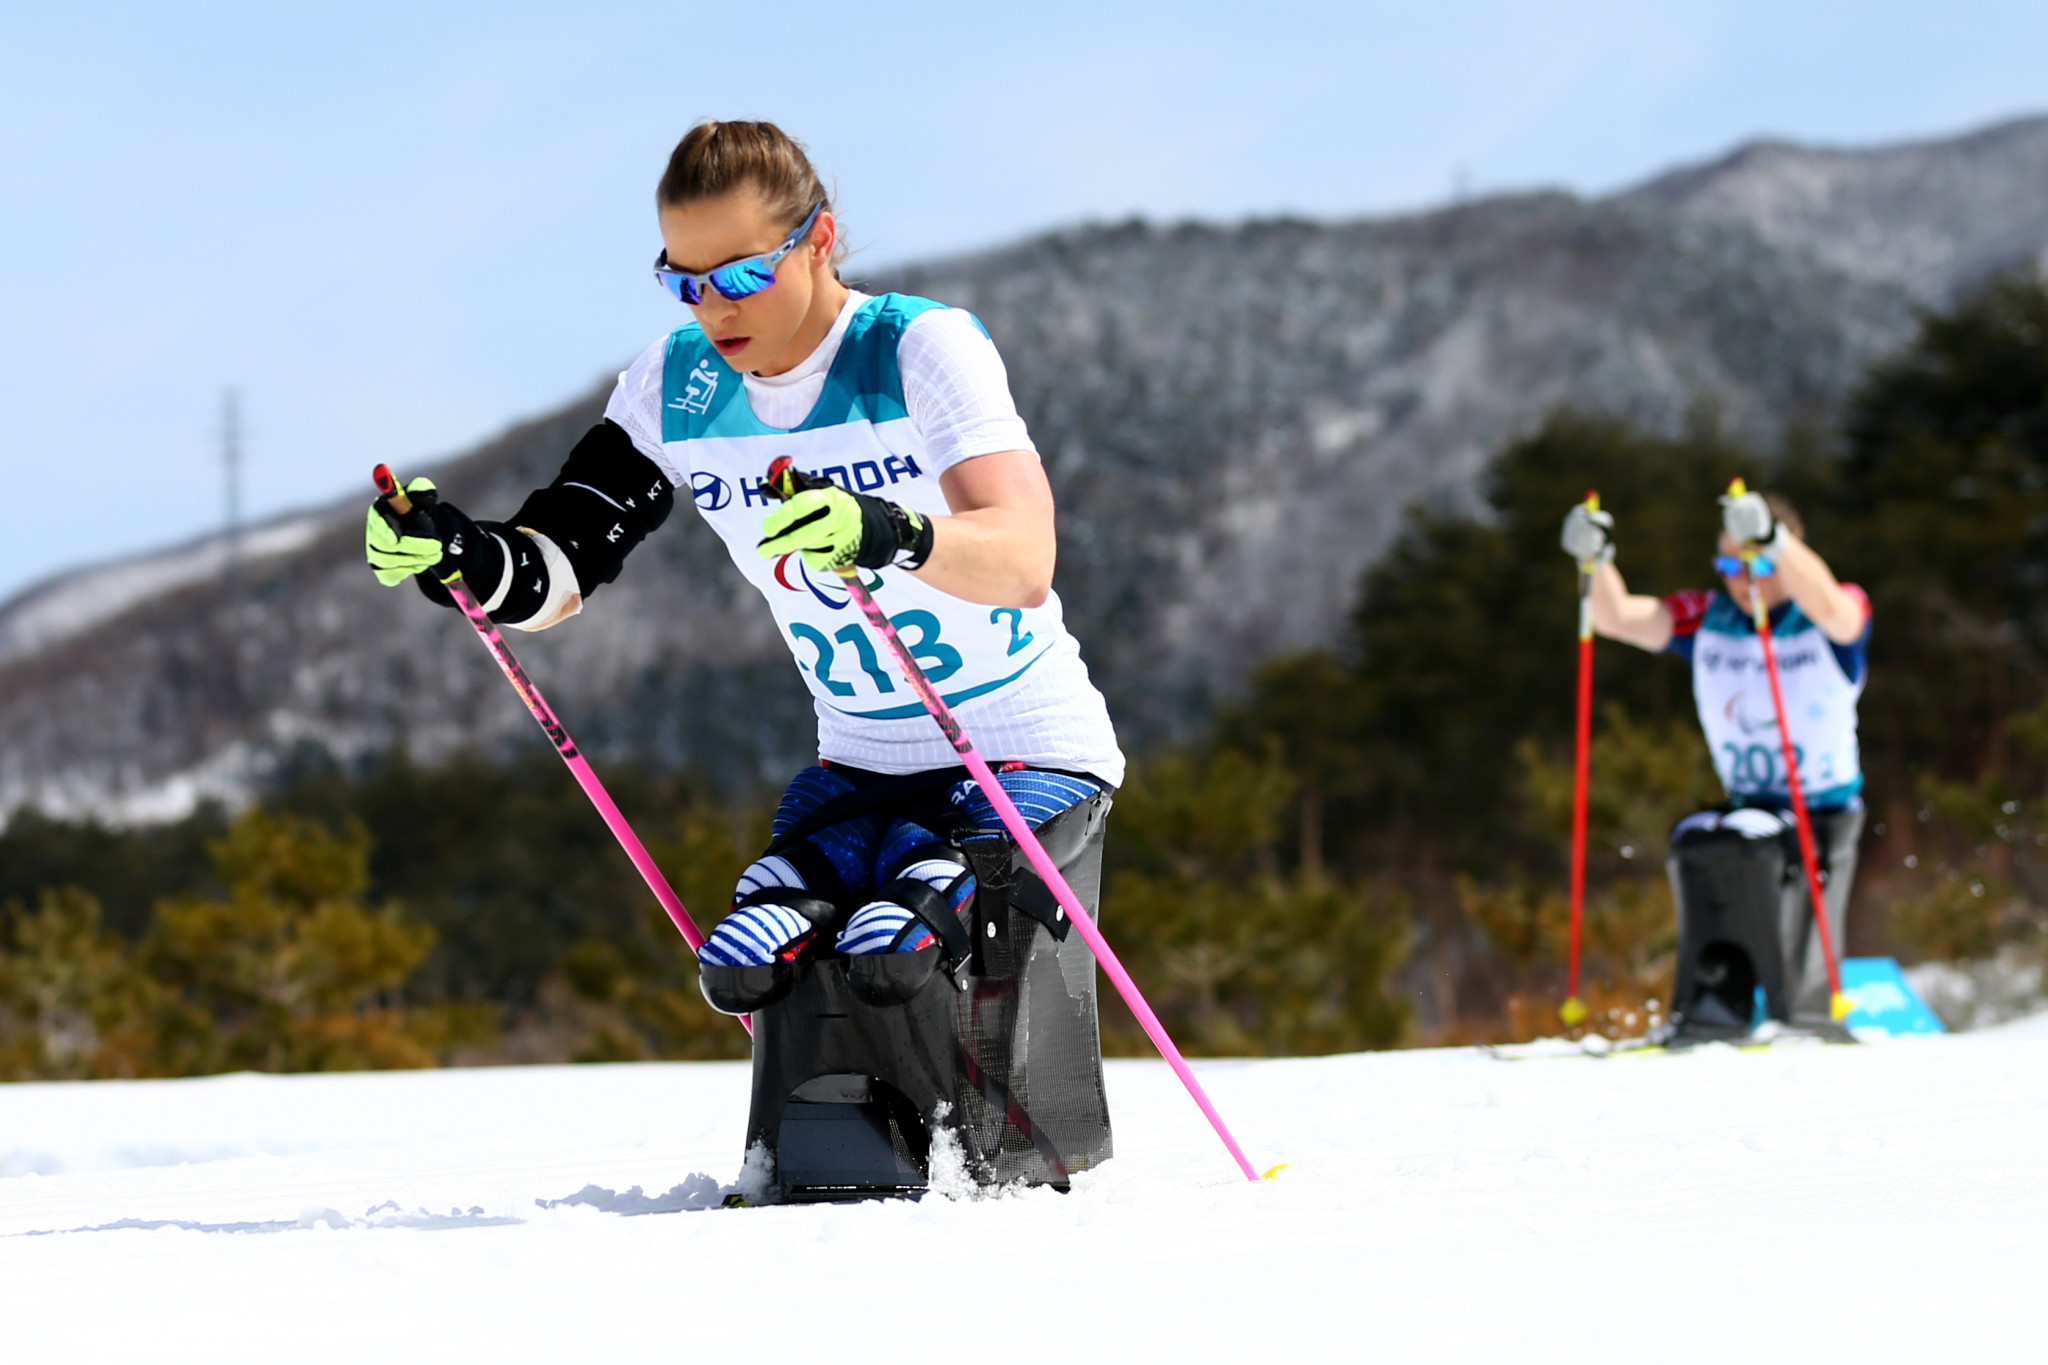 Oksana Masters has been named to the American Para-Nordic skiing team for next season ©Getty Images